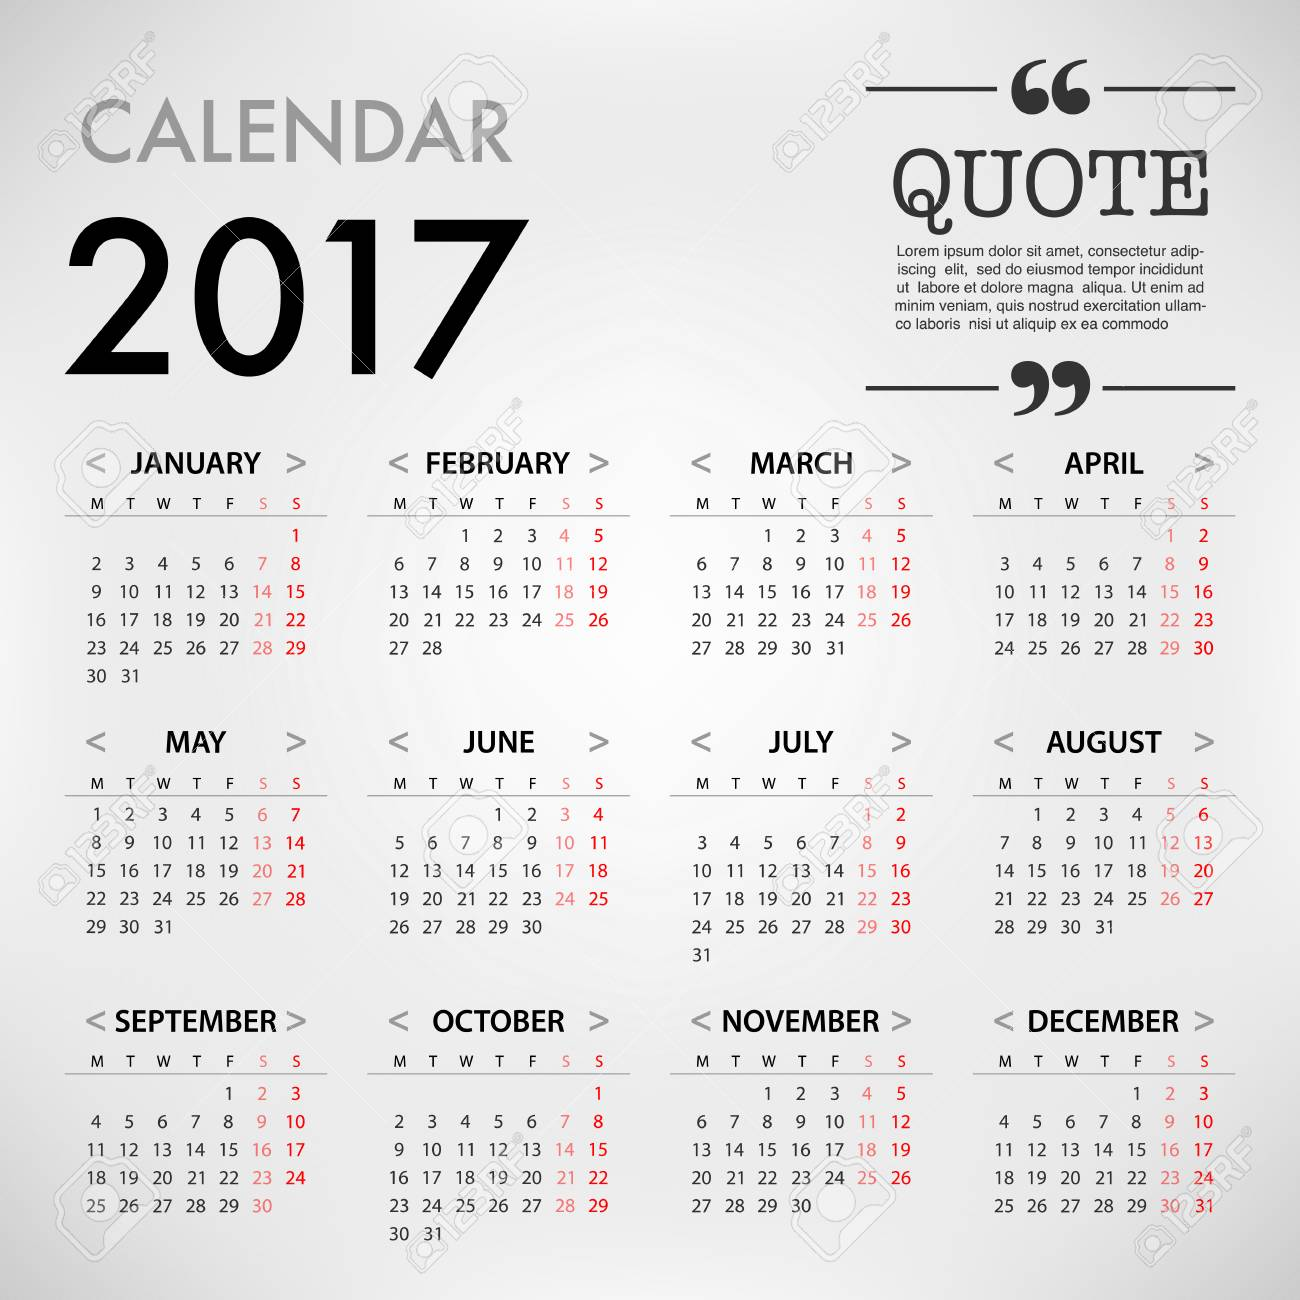 Delightful Calendar For 2017 On White Background With Quote On Right Corner For  Organization And Business.